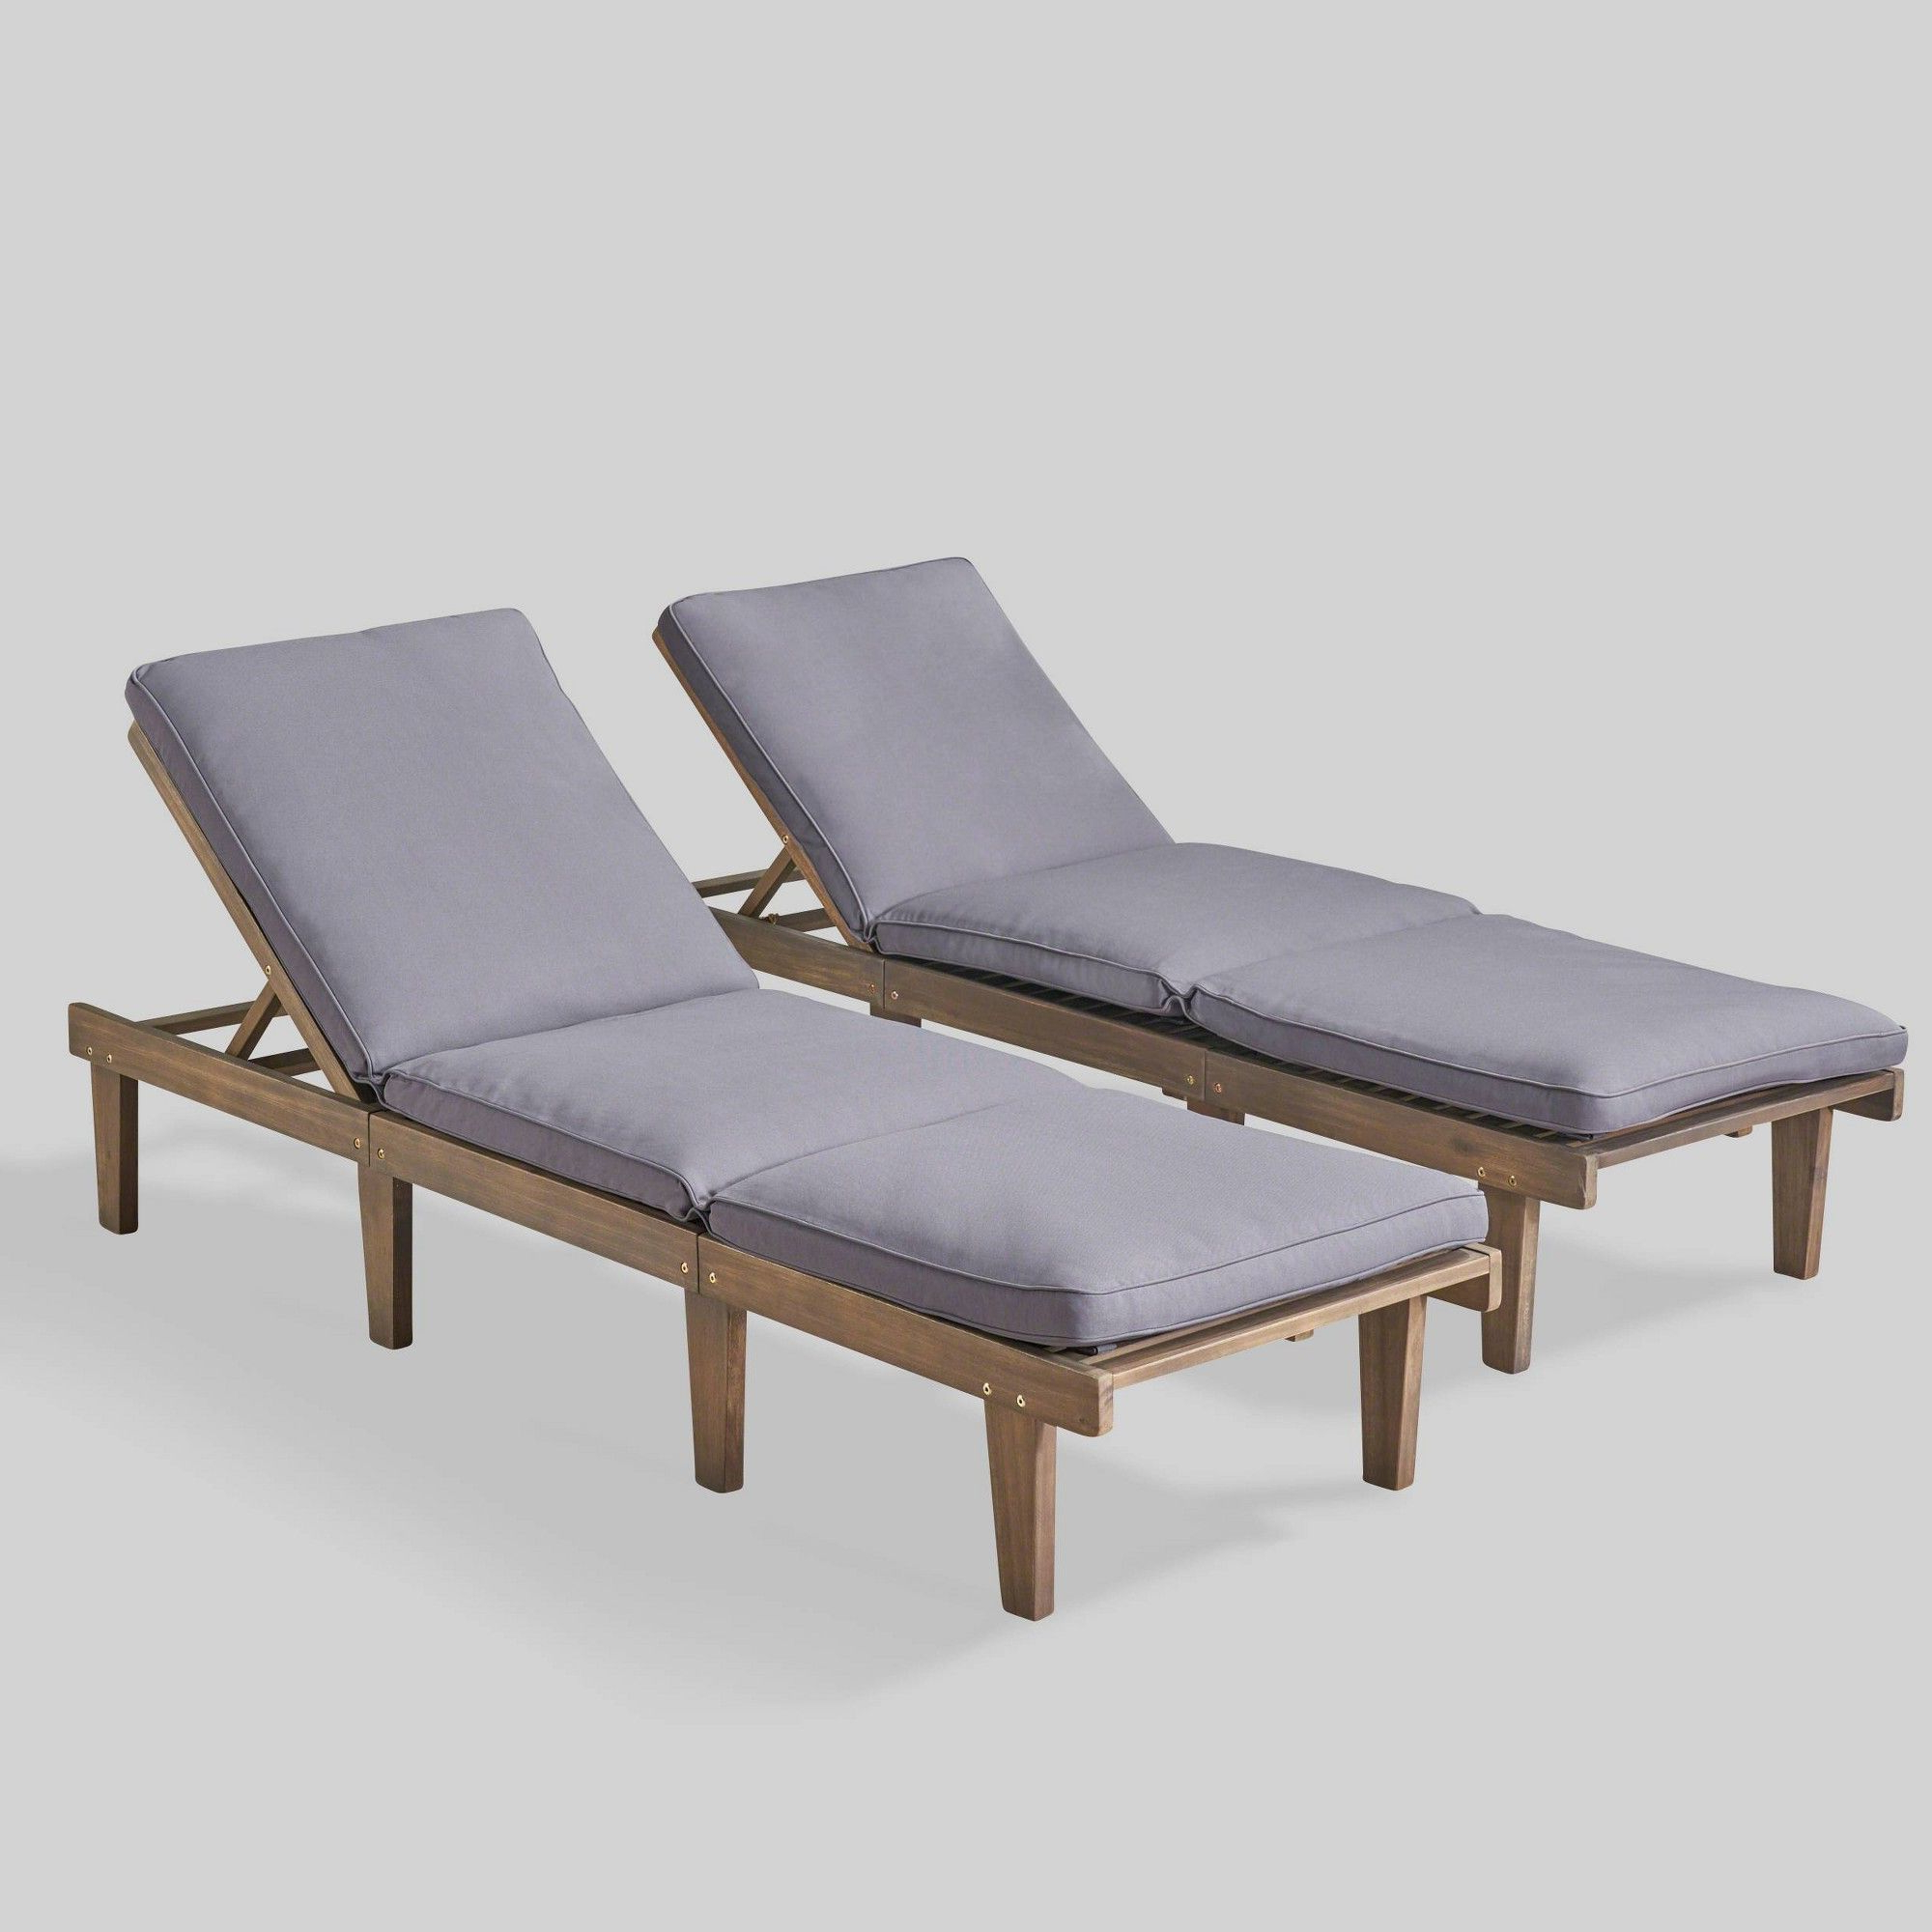 Outdoor Acacia Wood Chaise Lounges With Cushion Throughout Famous Ariana 2pk Acacia Wood Chaise Lounge Gray/dark Gray (Gallery 11 of 25)